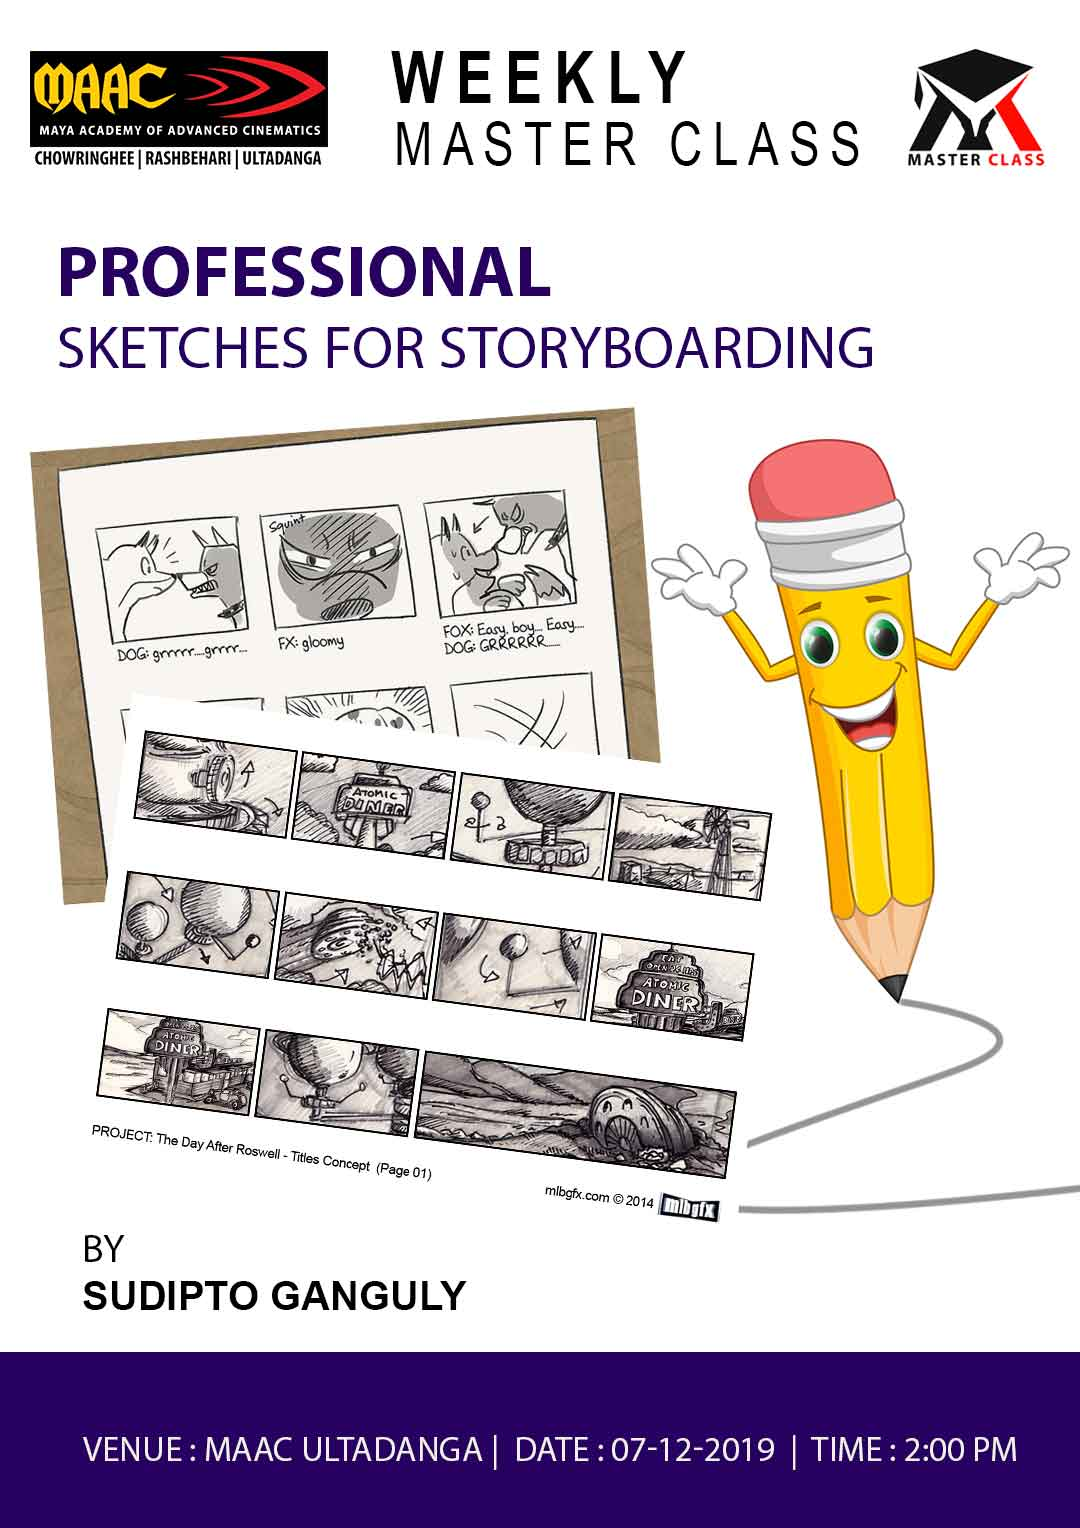 Weekly Master Class on Professional Sketching for StoryBoarding